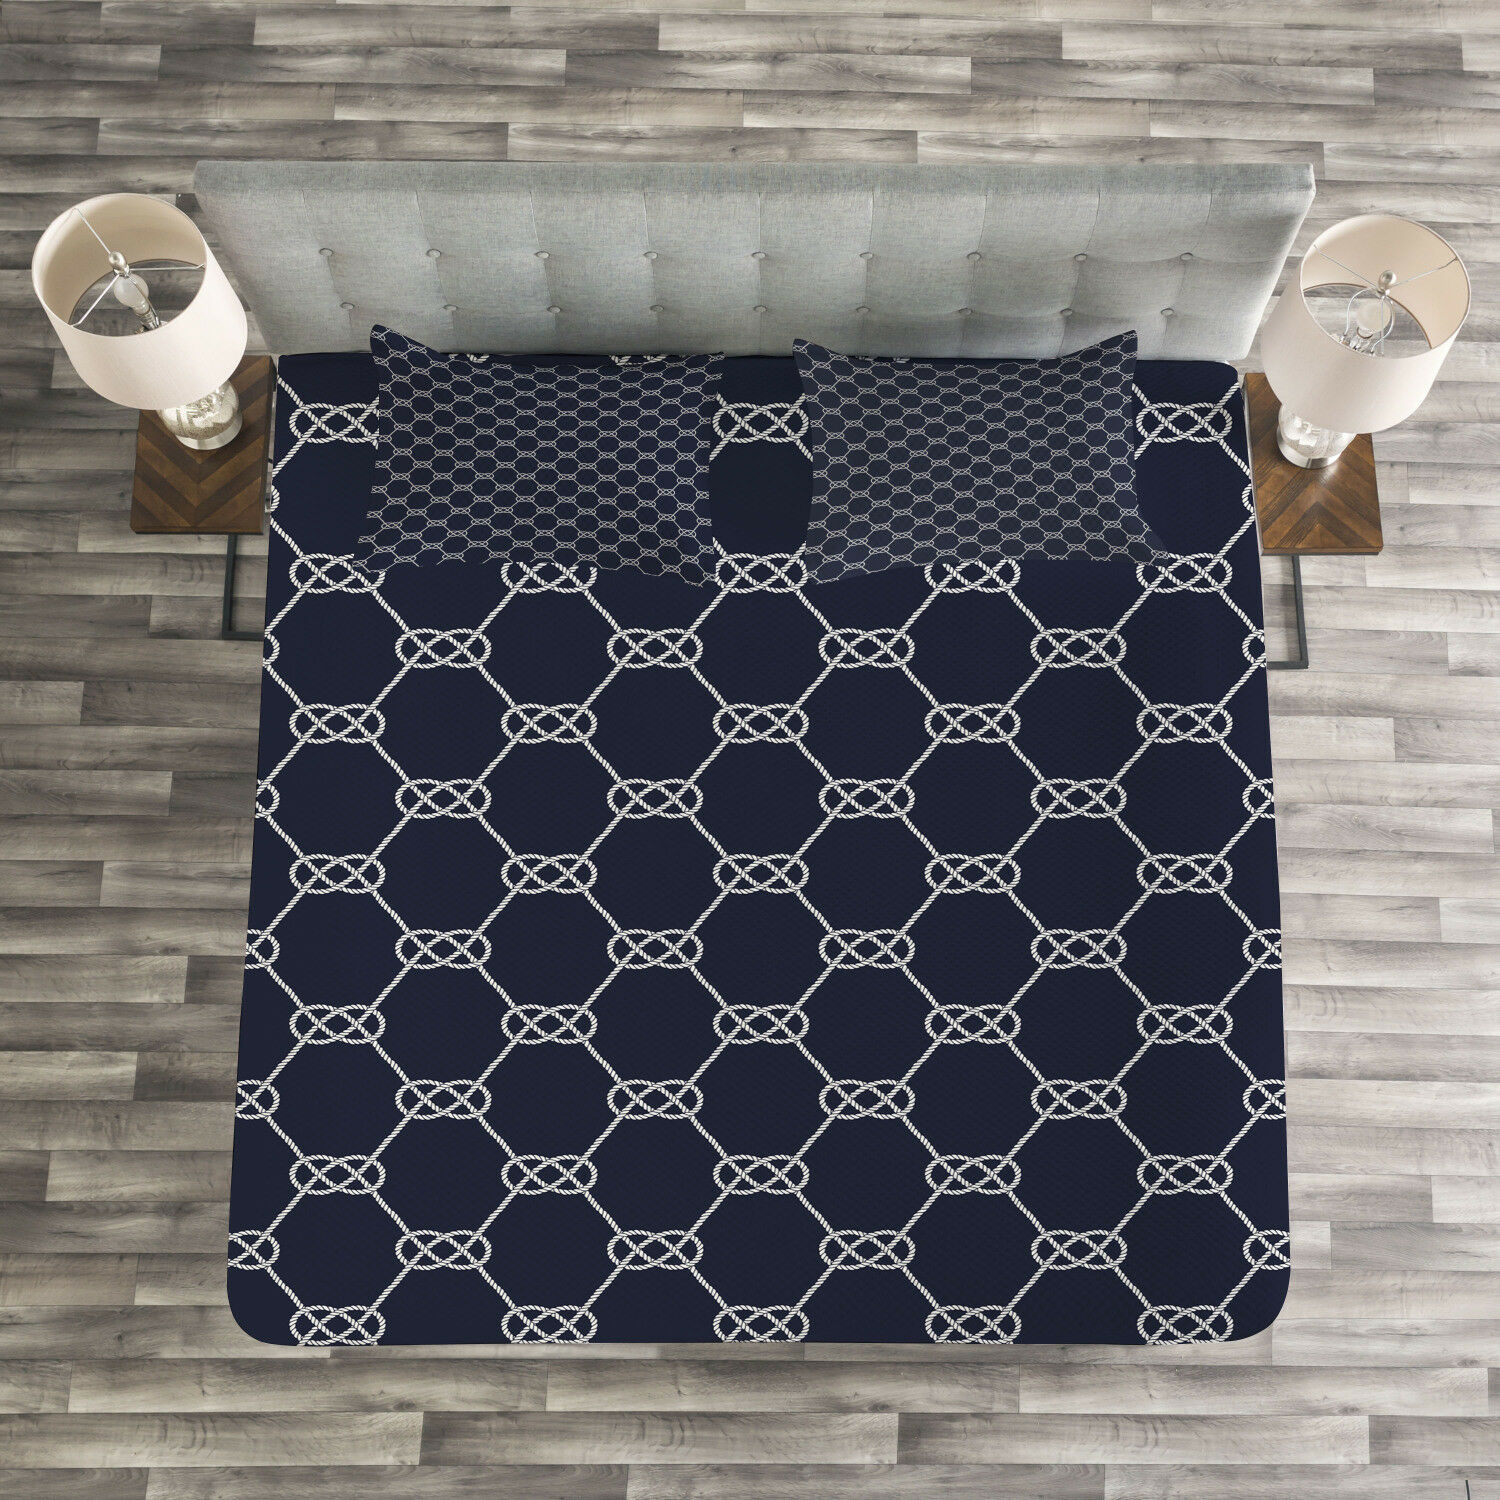 Navy blueeee Quilted Bedspread & Pillow Shams Set, Navy Inspired Knot Print